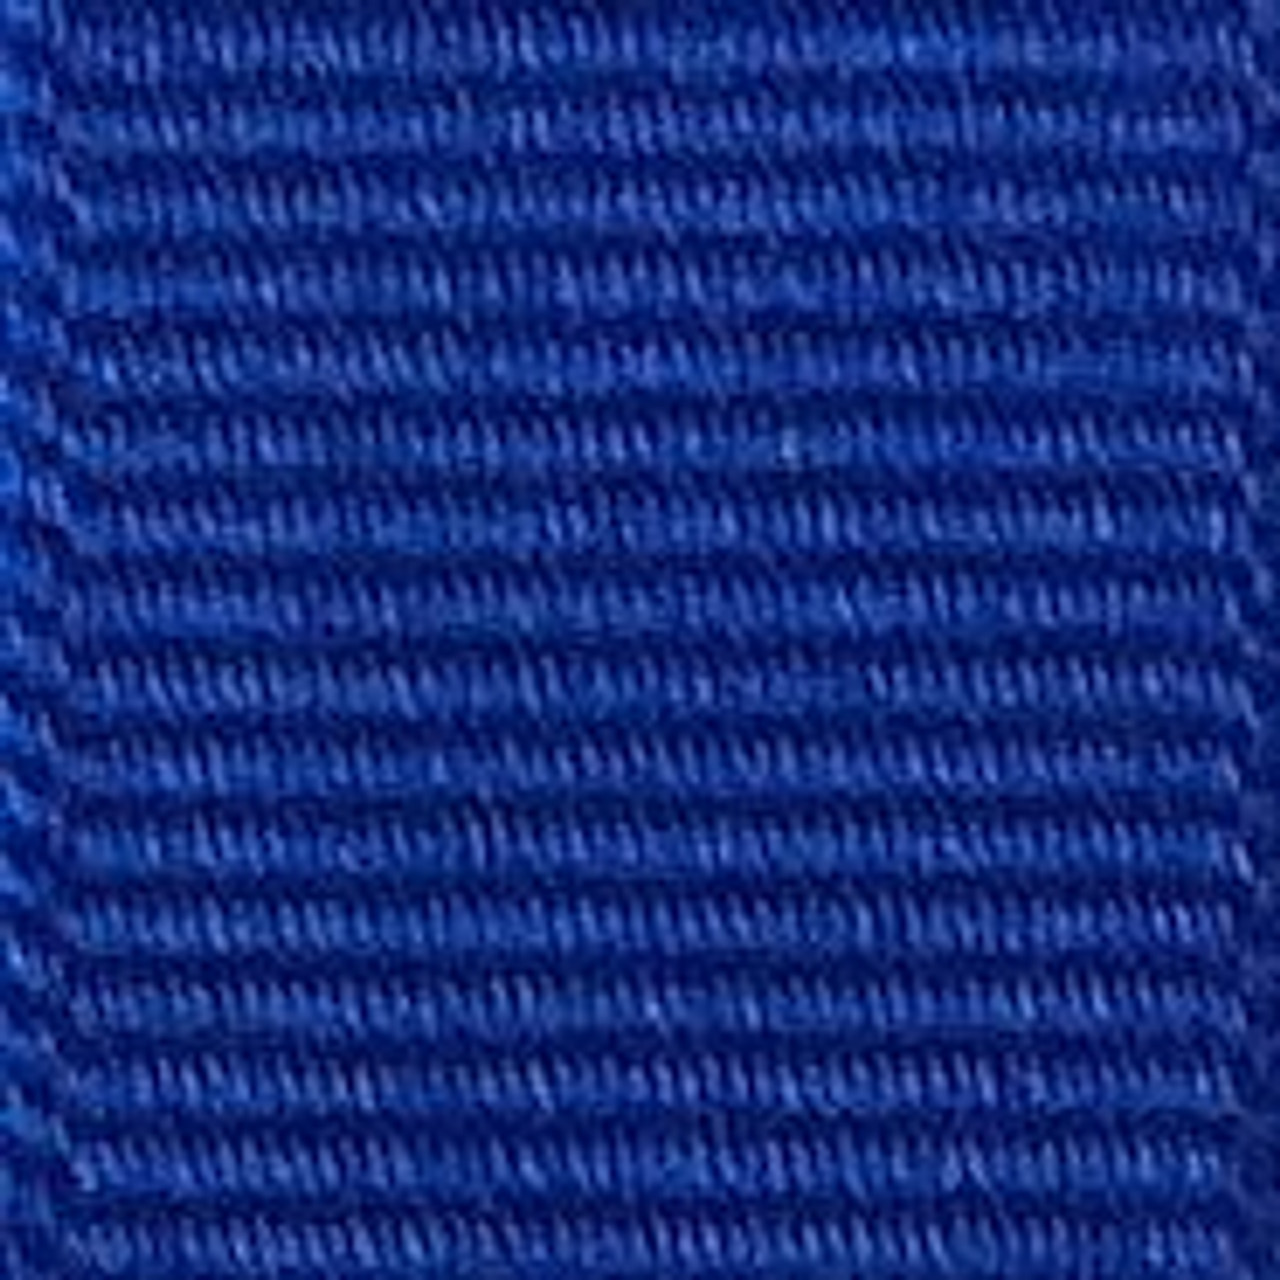 Electric Blue Offray Grosgrain Ribbon